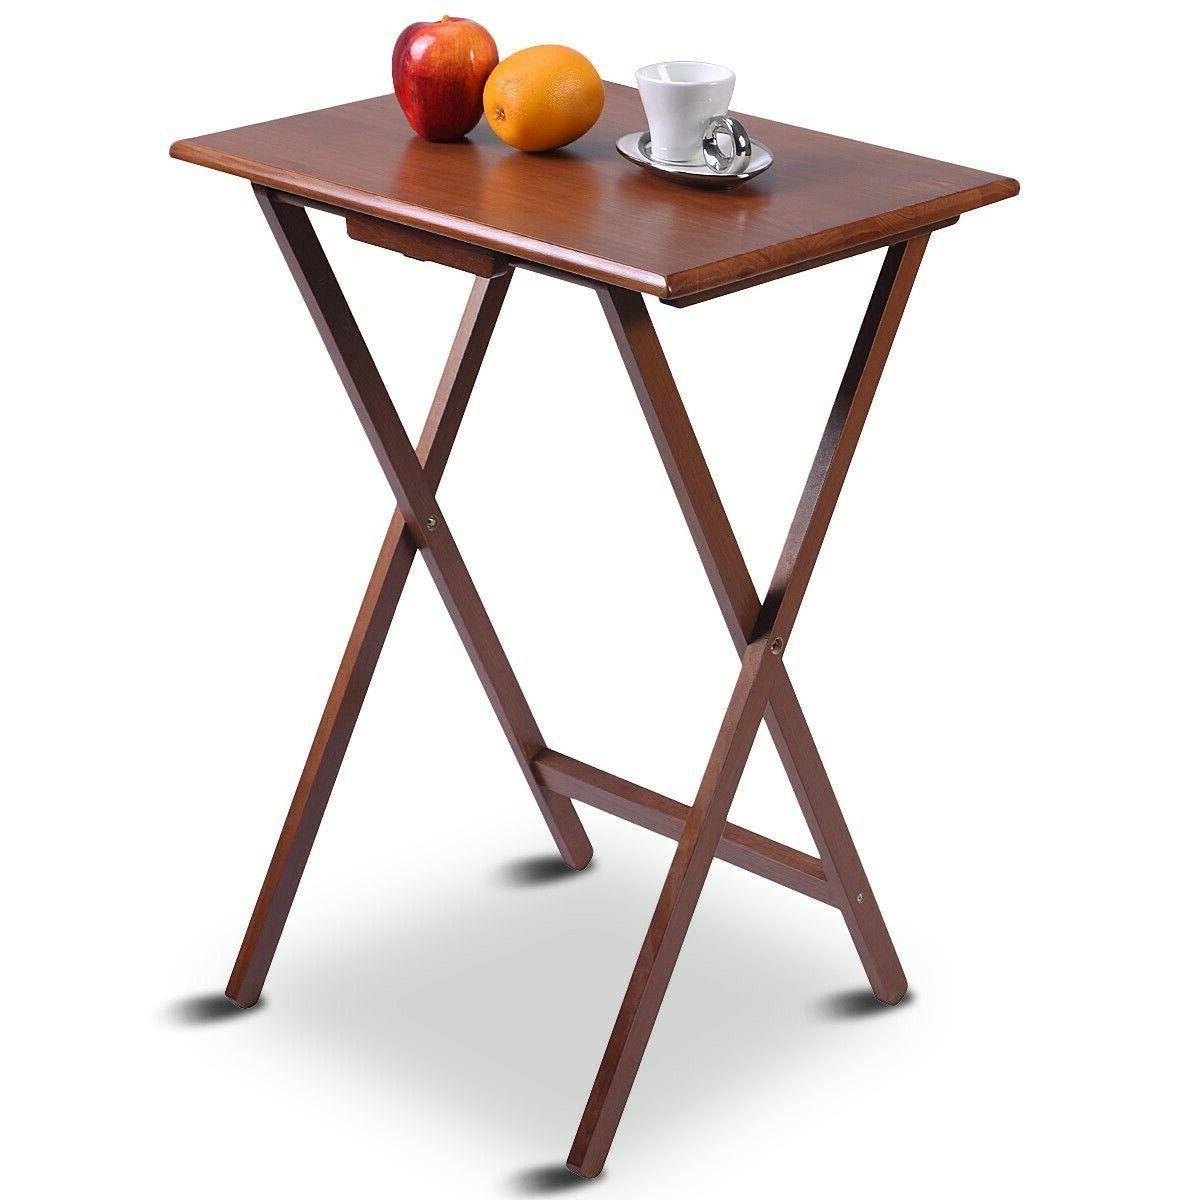 4 Piece Folding Tray Table Set Wood Dinner of Walnut